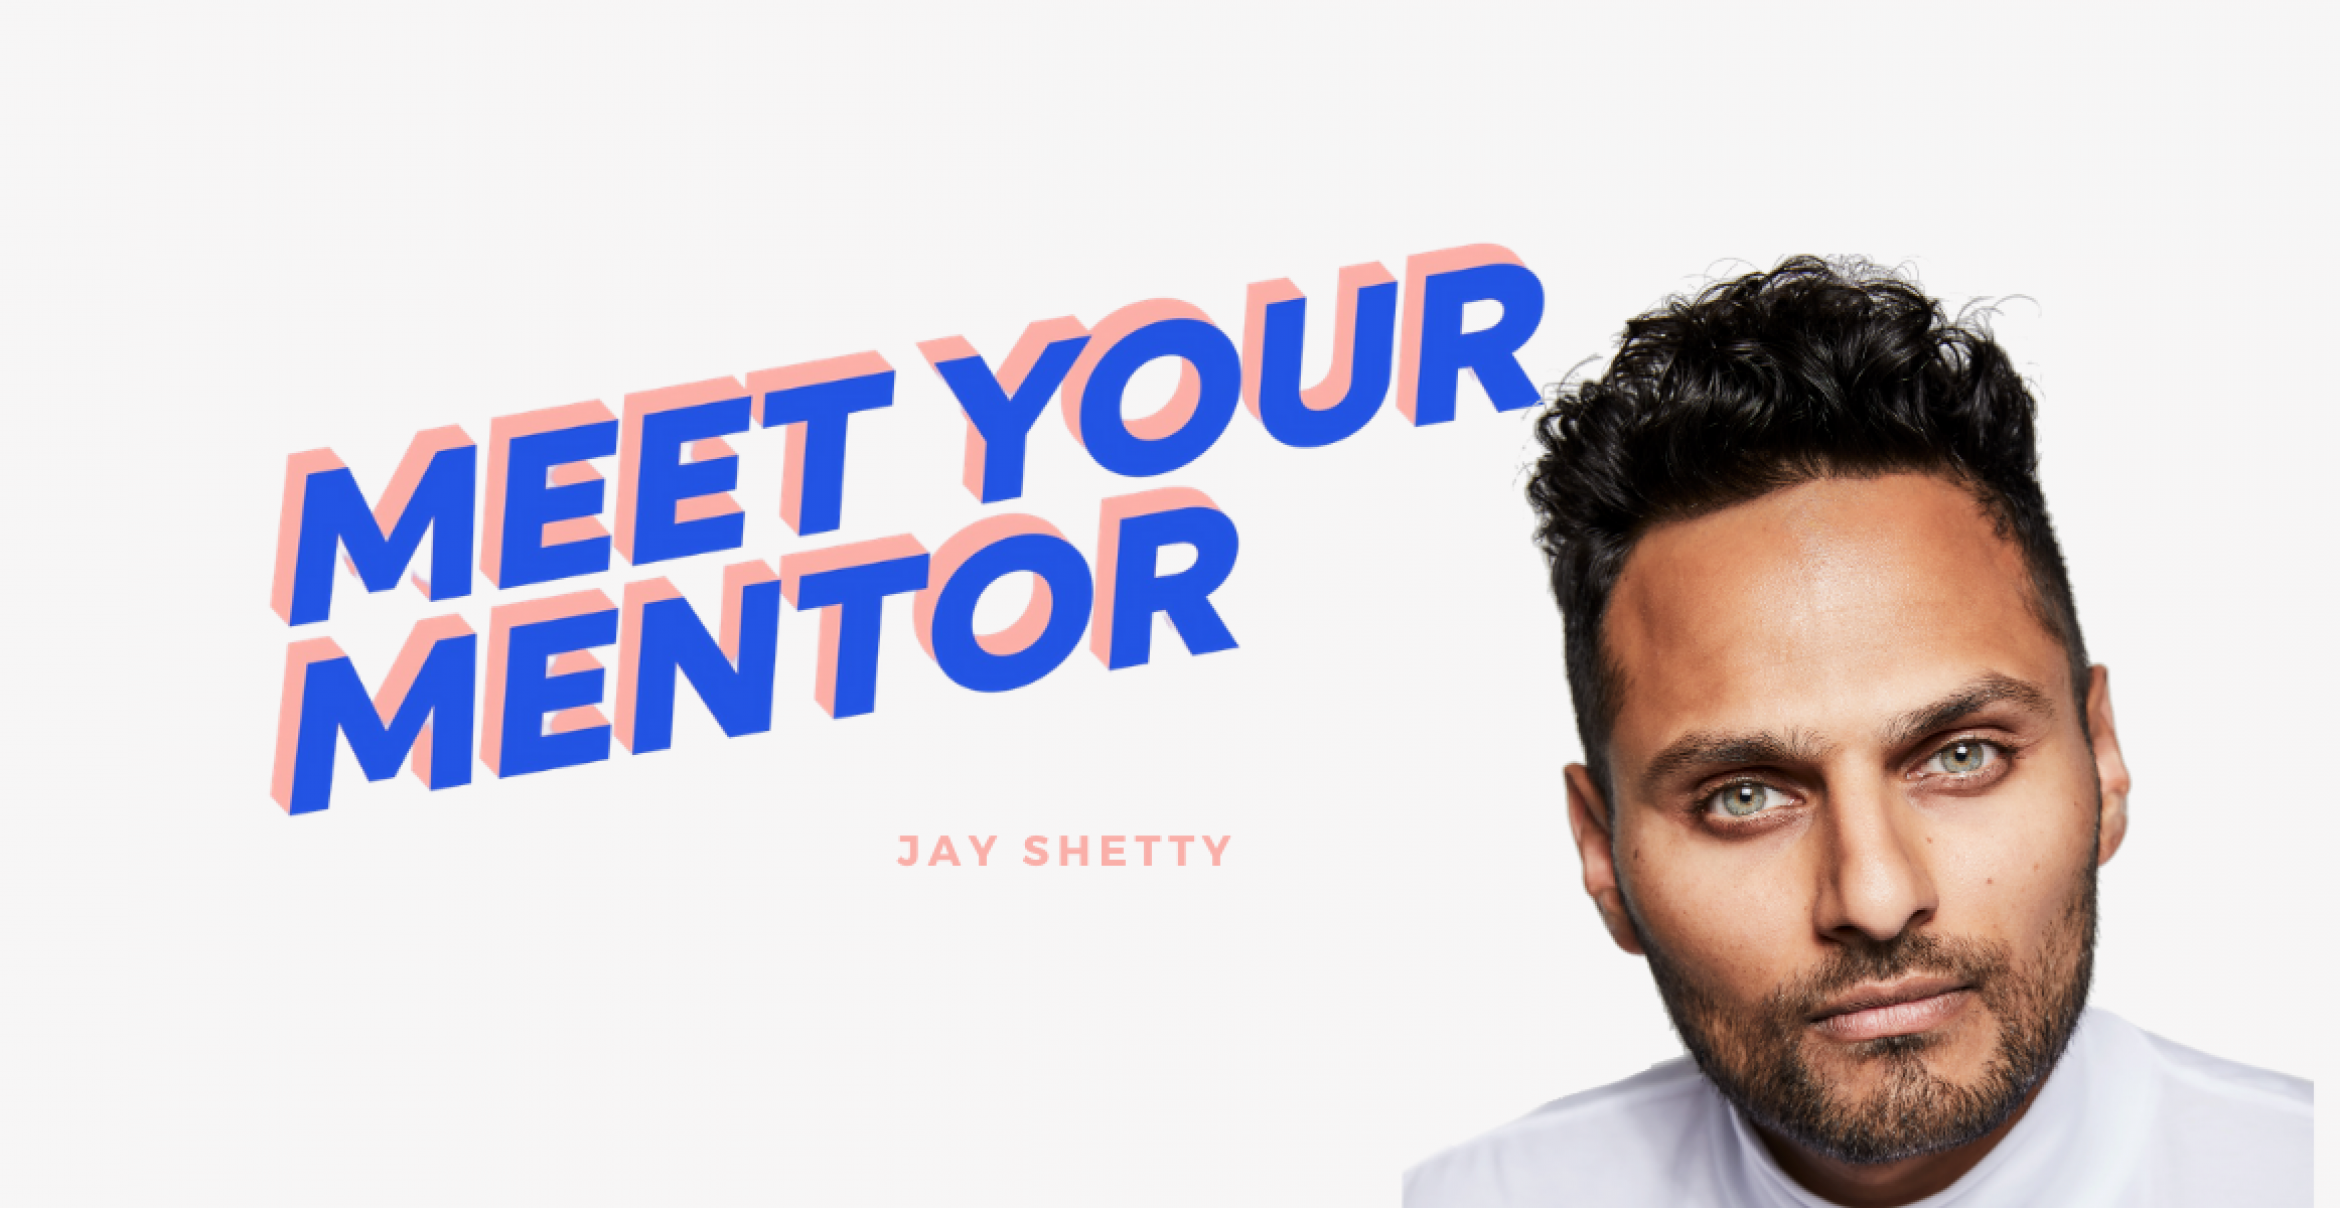 """MEET YOUR MENTOR: #9 Jay Shetty über sein neues Buch """"Think like a Monk"""""""